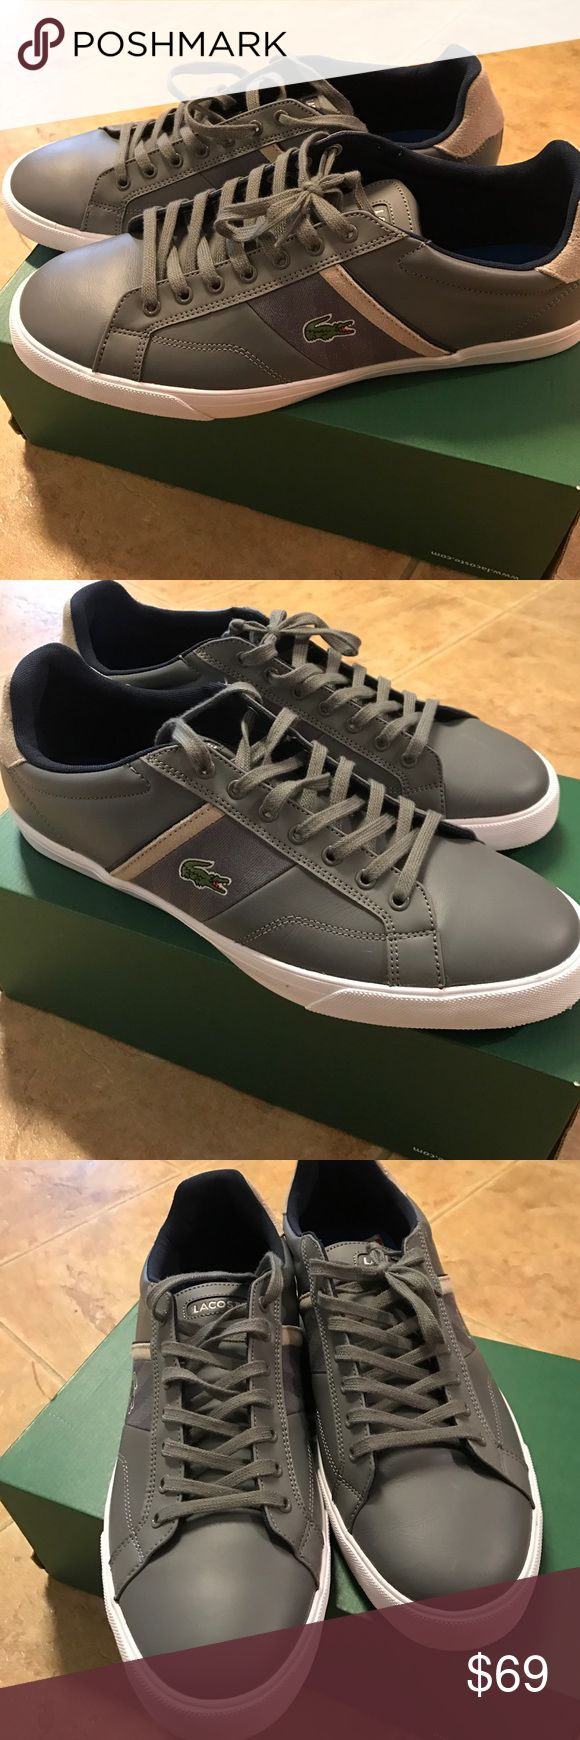 Lacoste men shoes size 13 Brand-new men's shoes like host size 13 box is missing lid, gray color, perfect for spring Lacoste Shoes Athletic Shoes